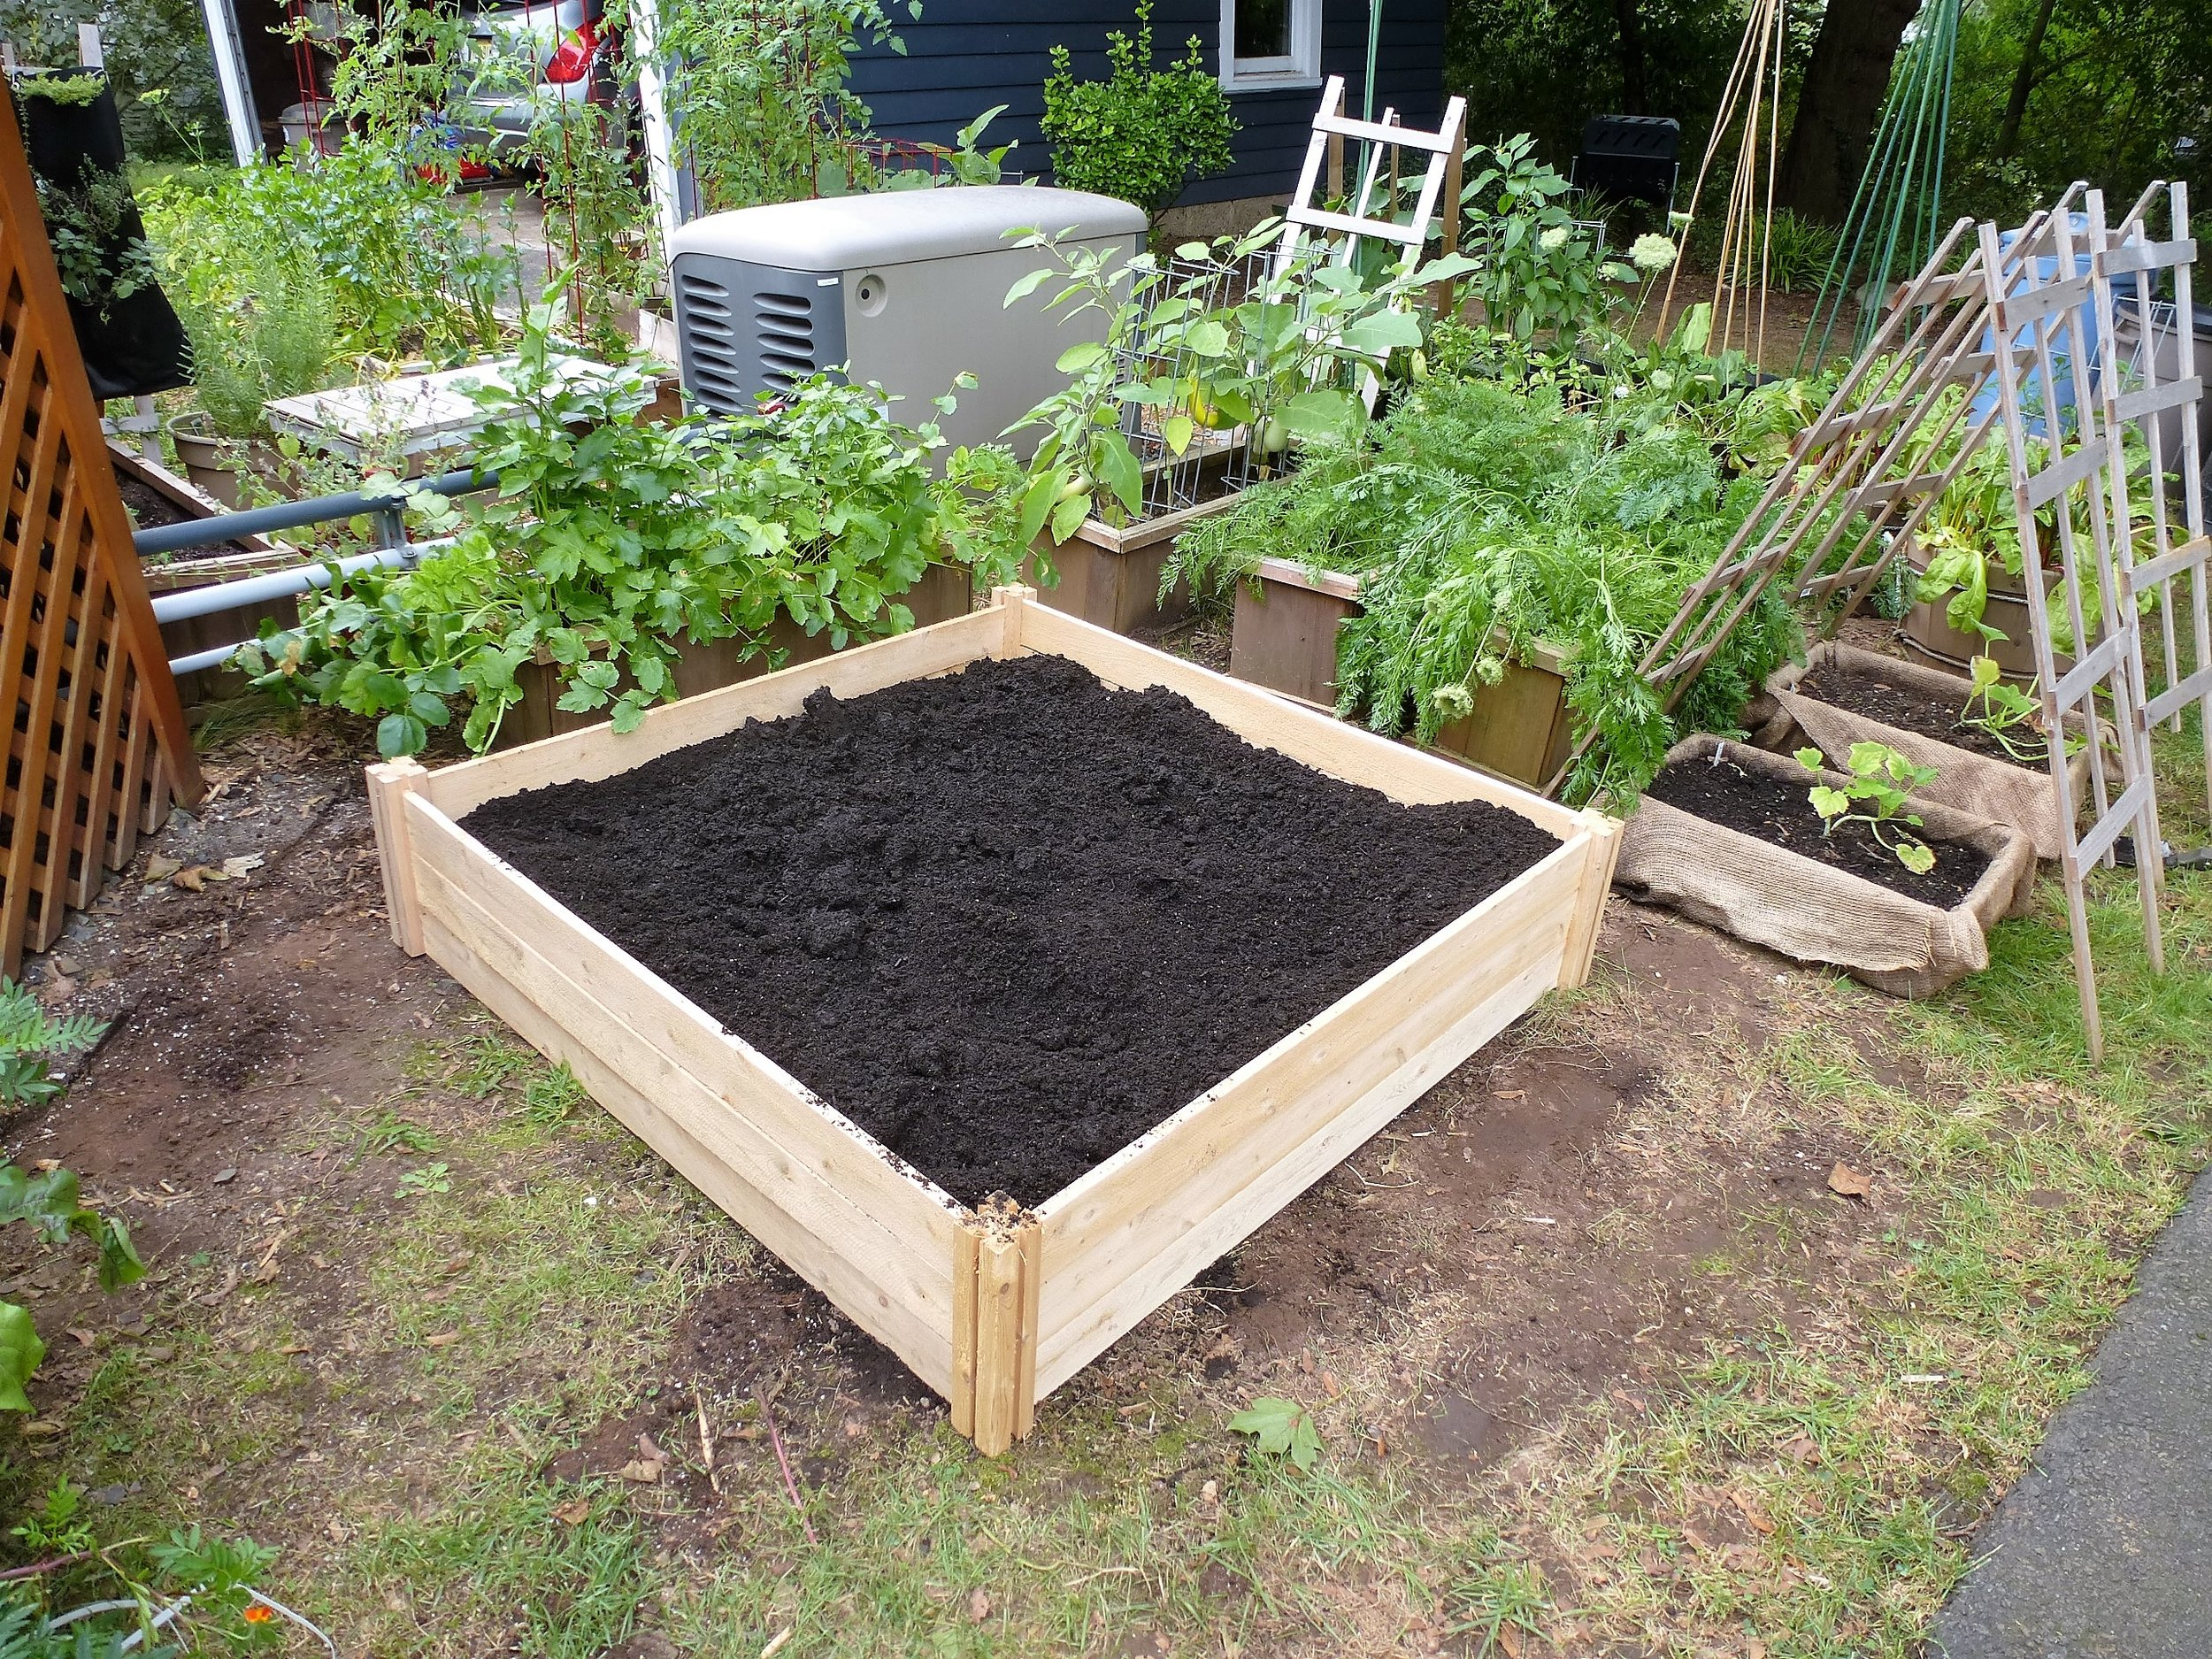 Step 4: Fill with soil and compost.